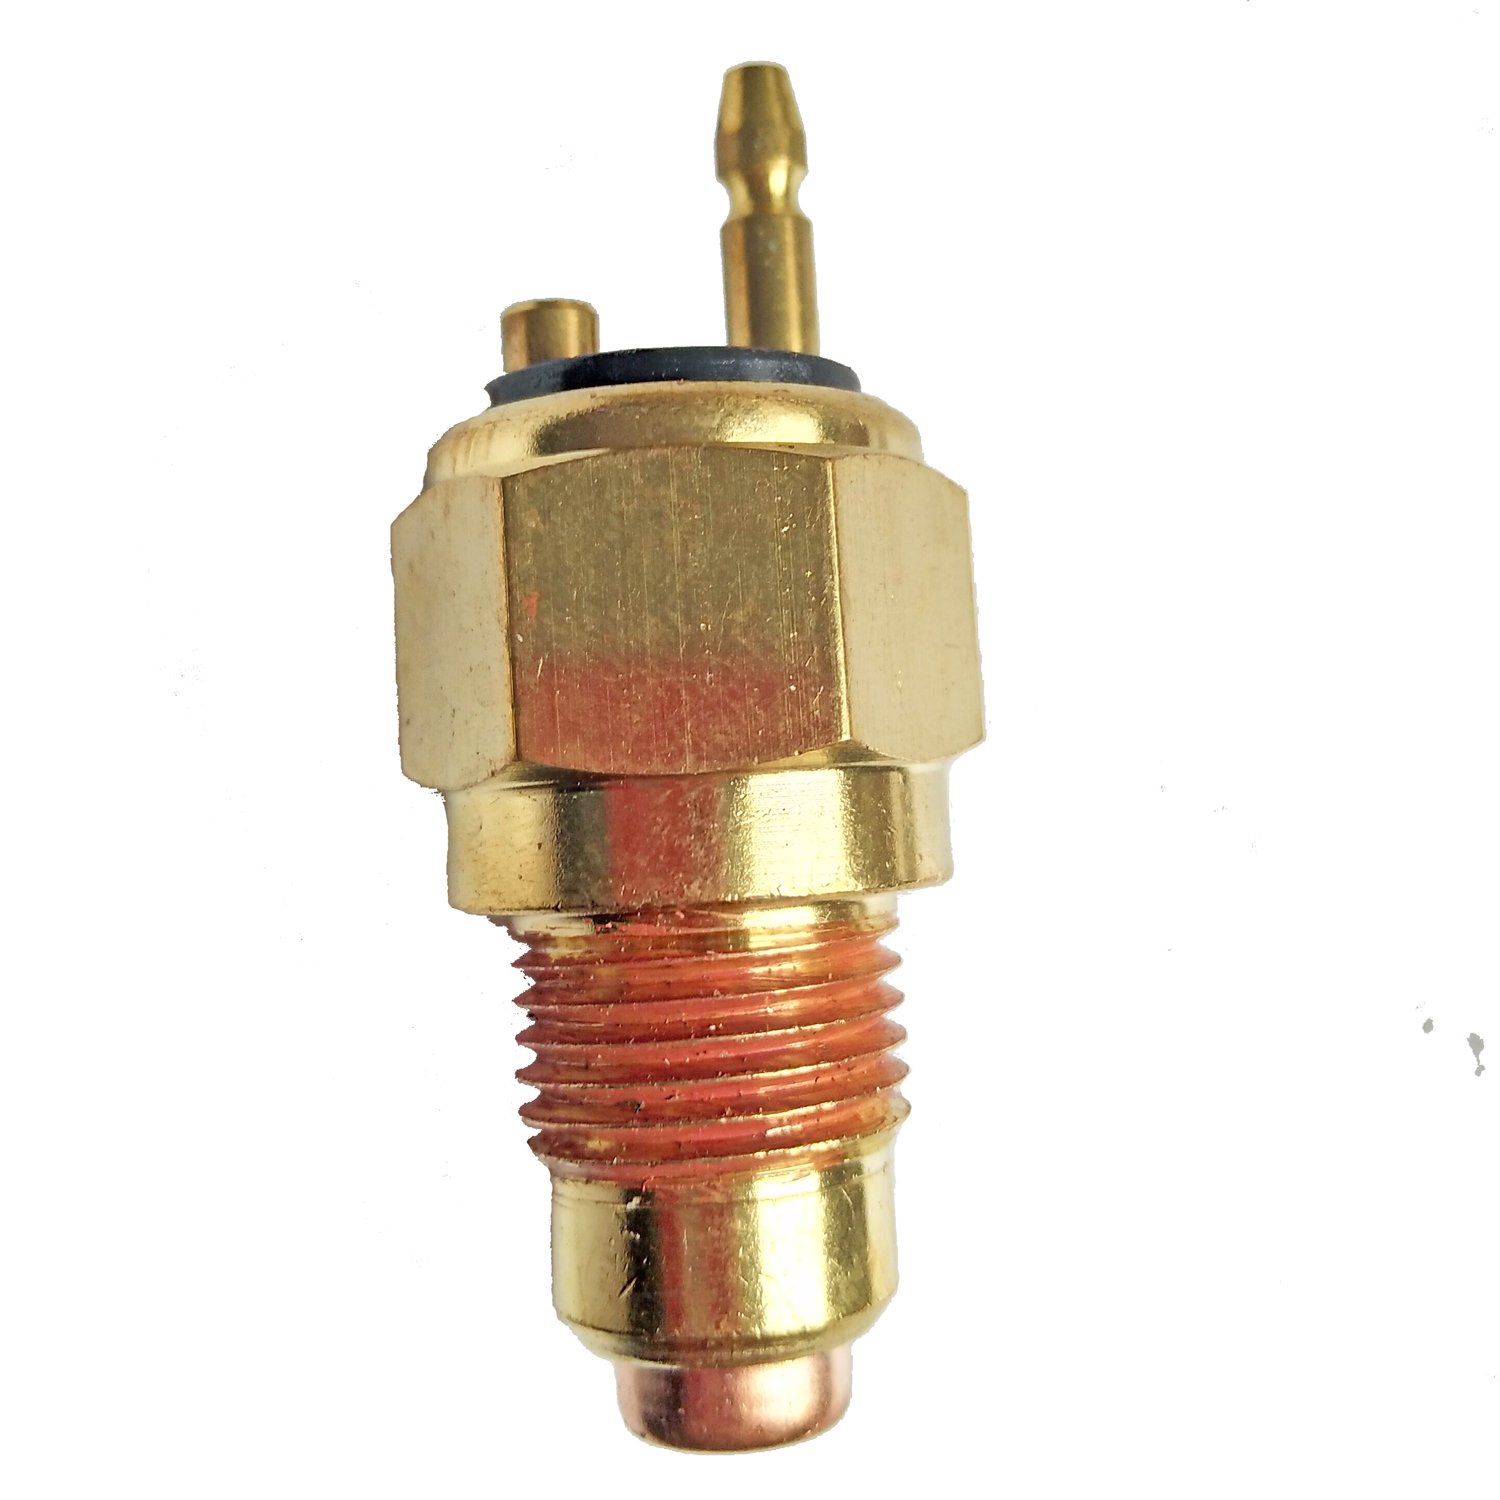 Mover Parts Water Temperature Sensor CH15516 for John Deere Excavator 30 50 80 35D 50D 27D 17G 26G 30G 35G 50G 60G 75G 85G Loader 375 3375 570 575 675 675B